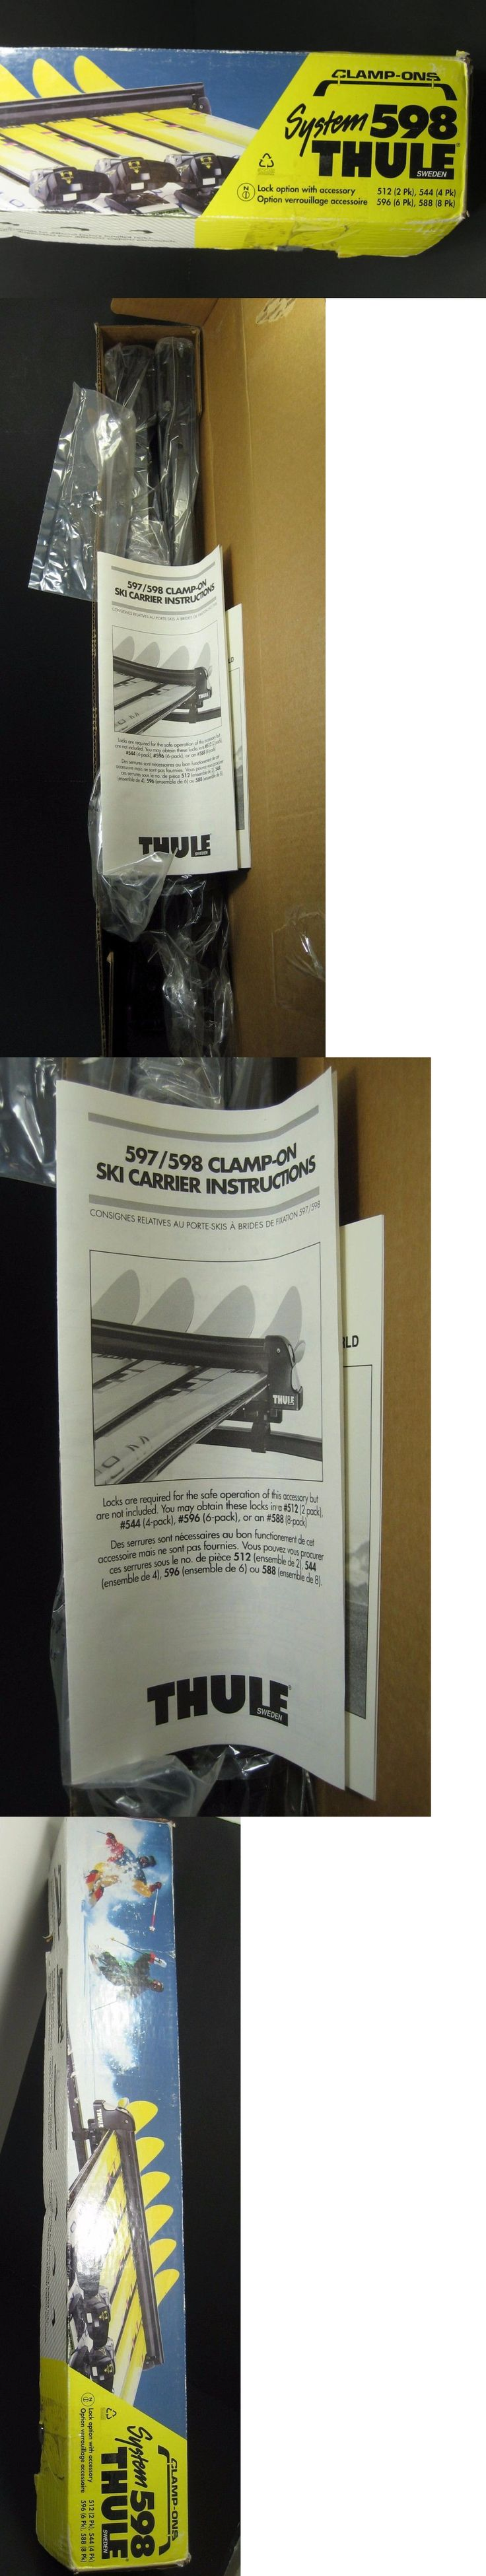 Racks and Carriers 21231: New Clamp-On Thule System 598 28 Ski Snowboard Carrier Car Roof Rack W Clamps -> BUY IT NOW ONLY: $59 on eBay!